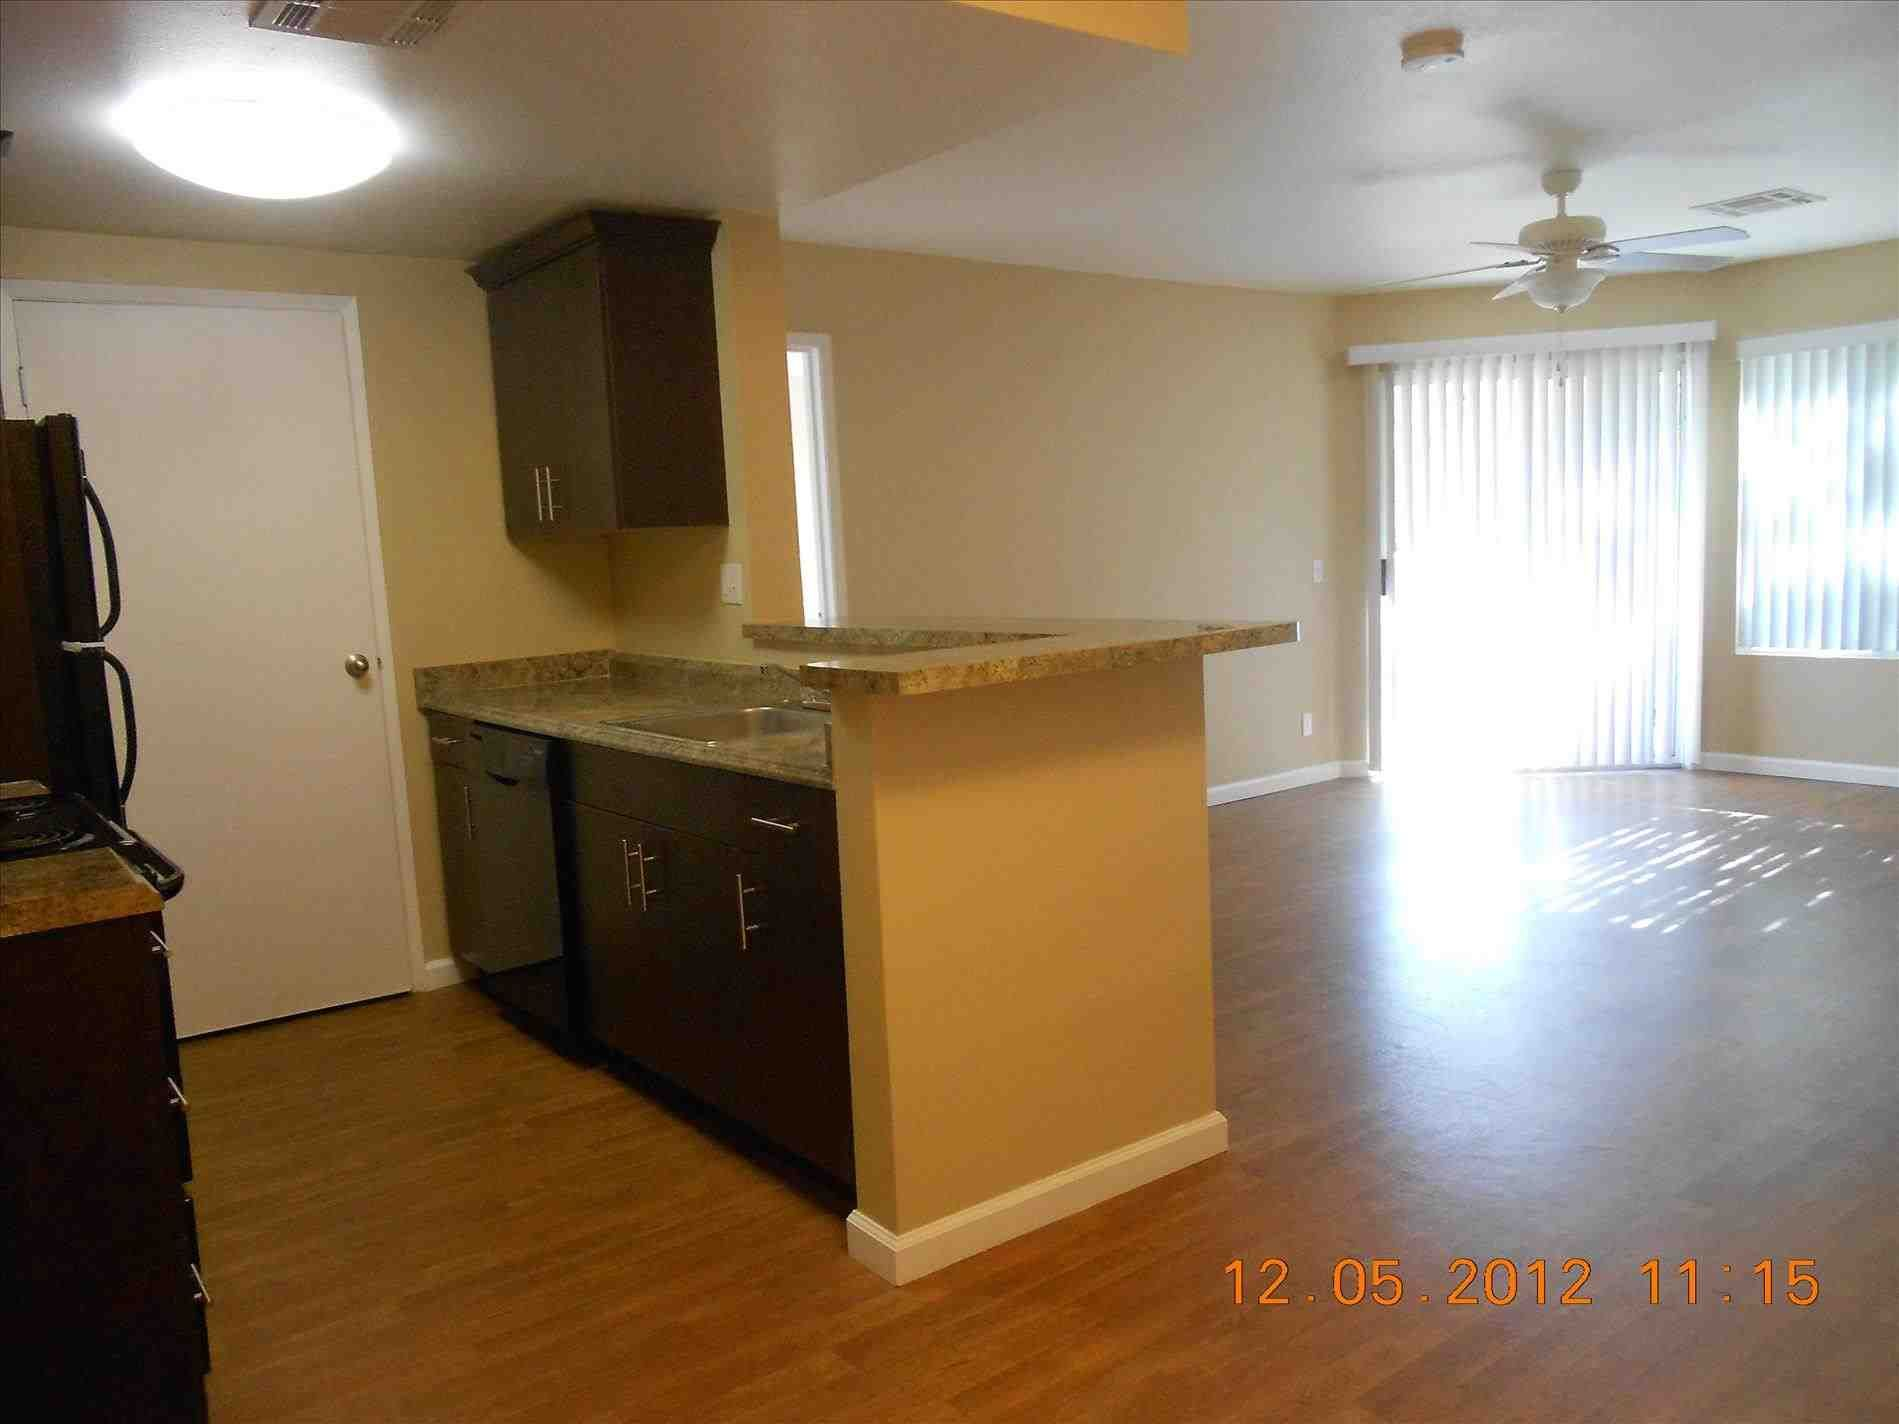 1 bedroom with loft for rent  desert Apartment  today  recent high desert medical college